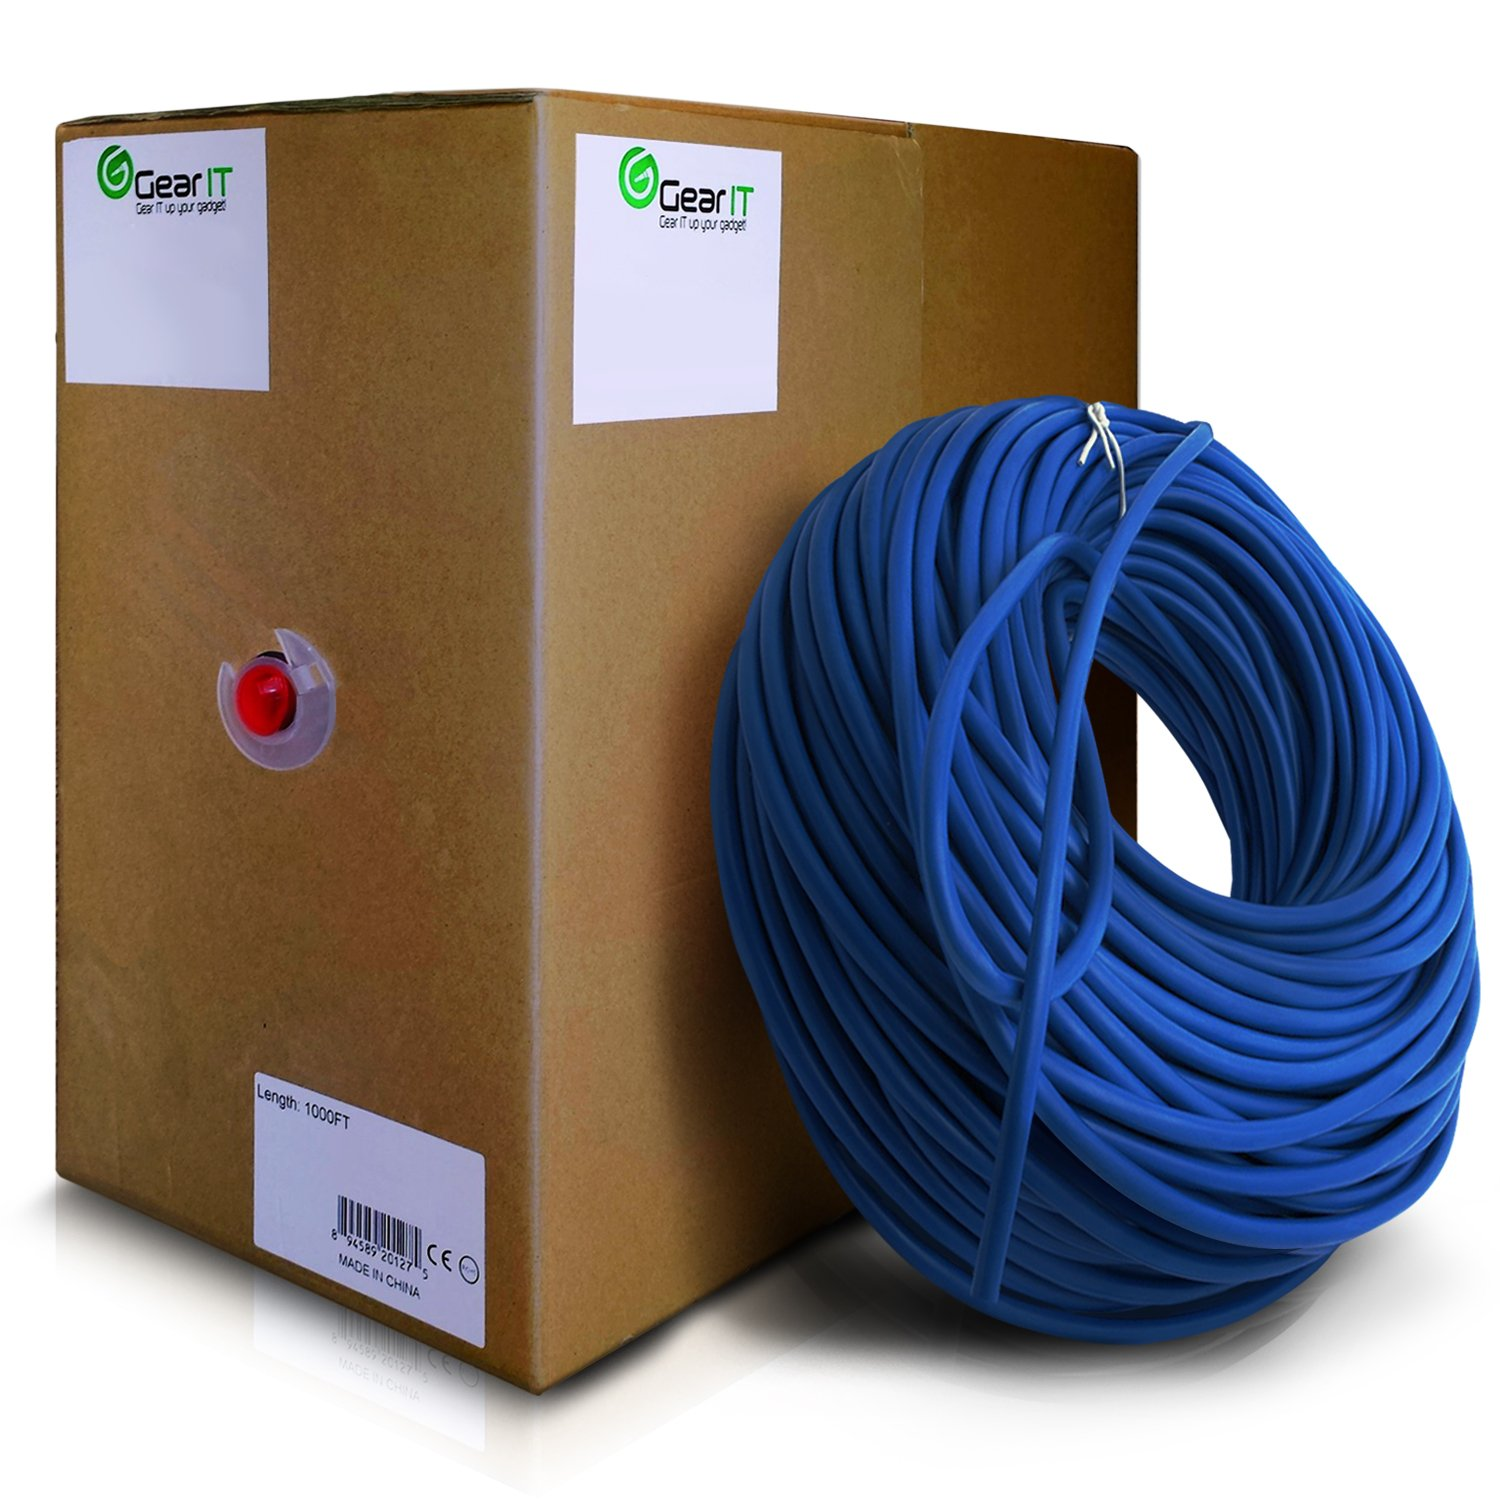 GearIT 1000 Feet Bulk Cat6 Ethernet Cable - Cat 6e 550Mhz 24AWG Full Copper Wire UTP Pull Box - In-Wall Rated (CM) STRANDED Cat6, Blue by GearIT